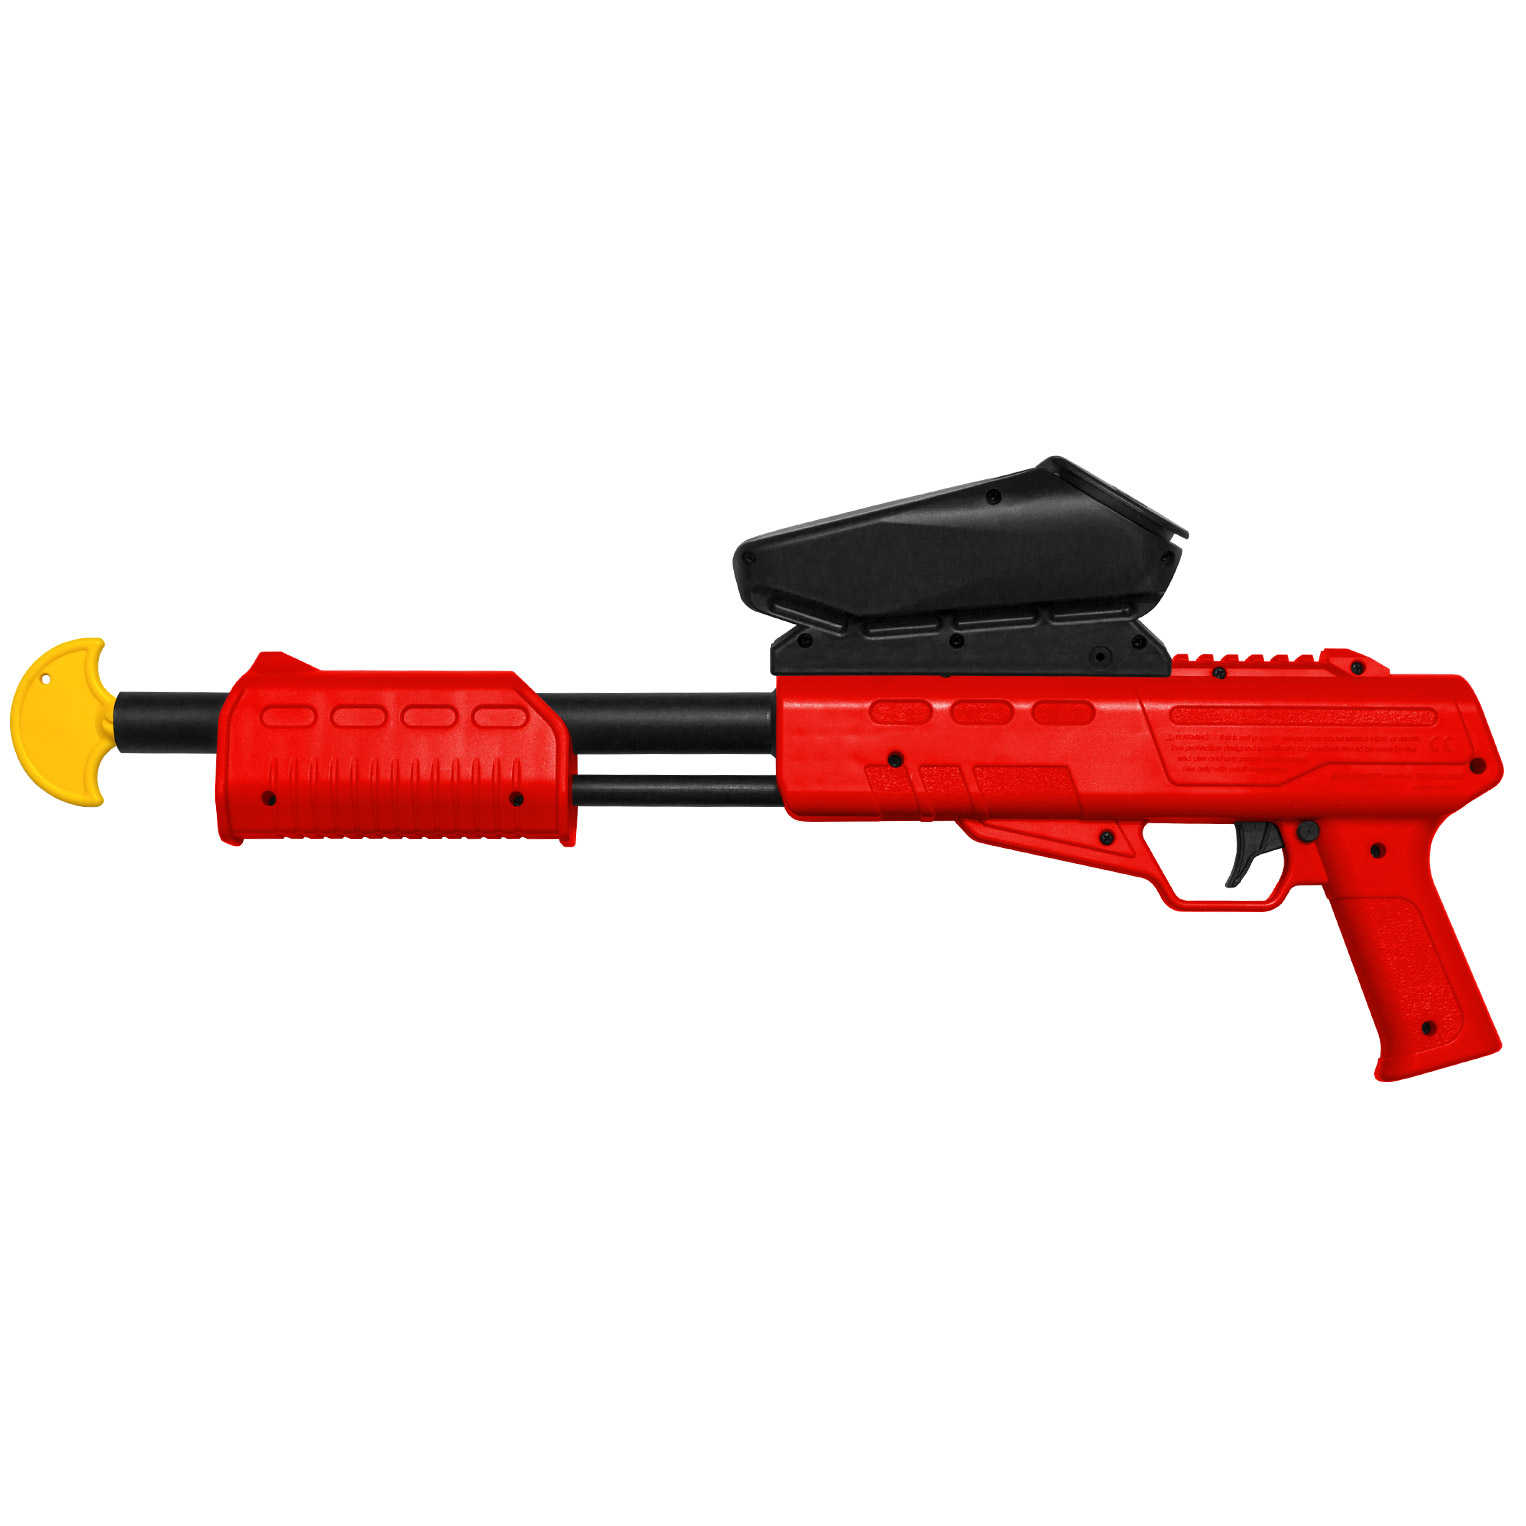 BLASTER KIDS PAINTBALL MARKER CAL. 50 (0.5 J) INCL.LOADER (RED) - Free Shipping*